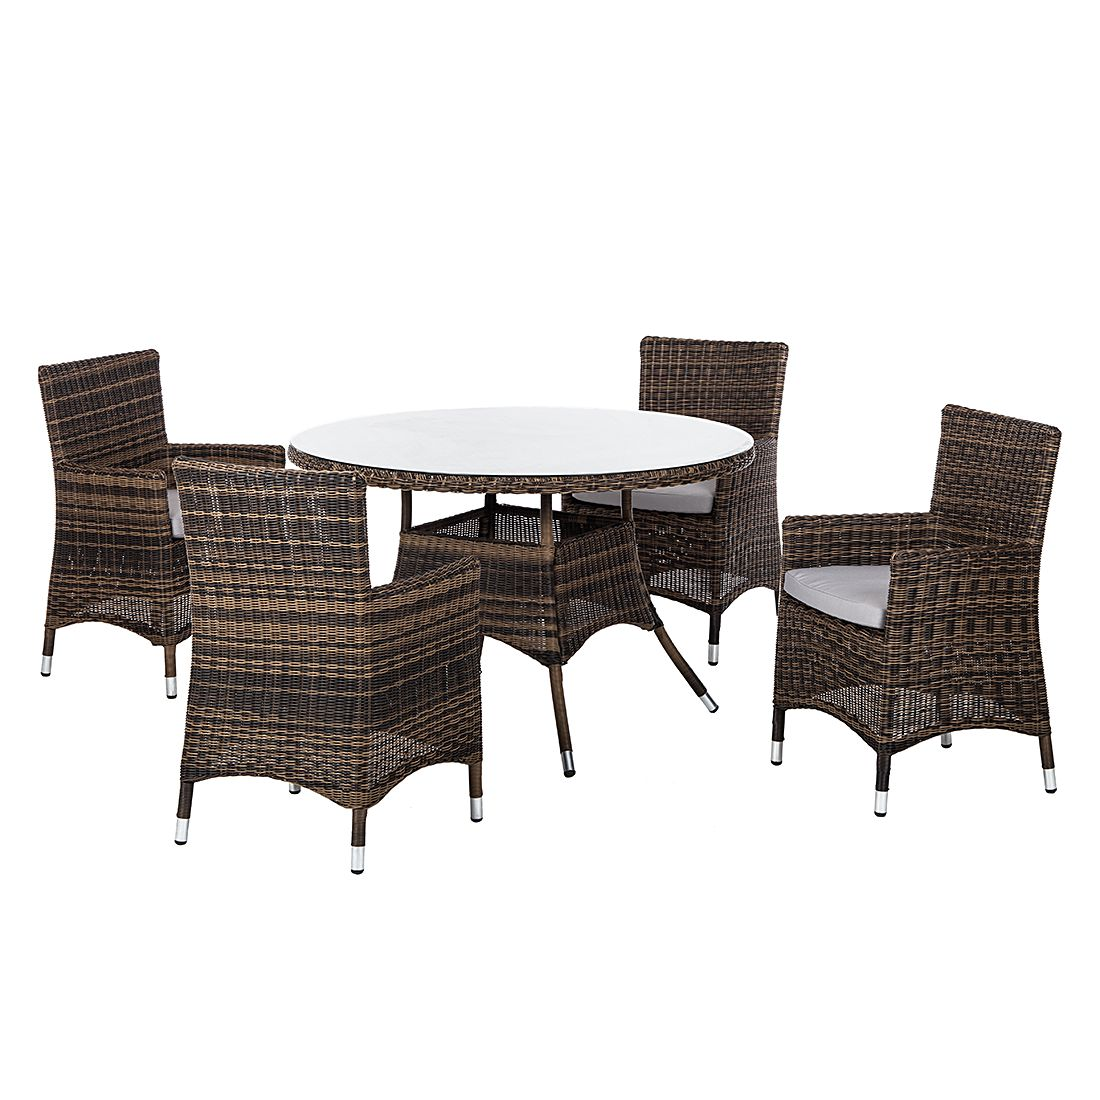 sitzgruppe sunremo 5 teilig polyrattan braun beige kings garden g nstig kaufen. Black Bedroom Furniture Sets. Home Design Ideas